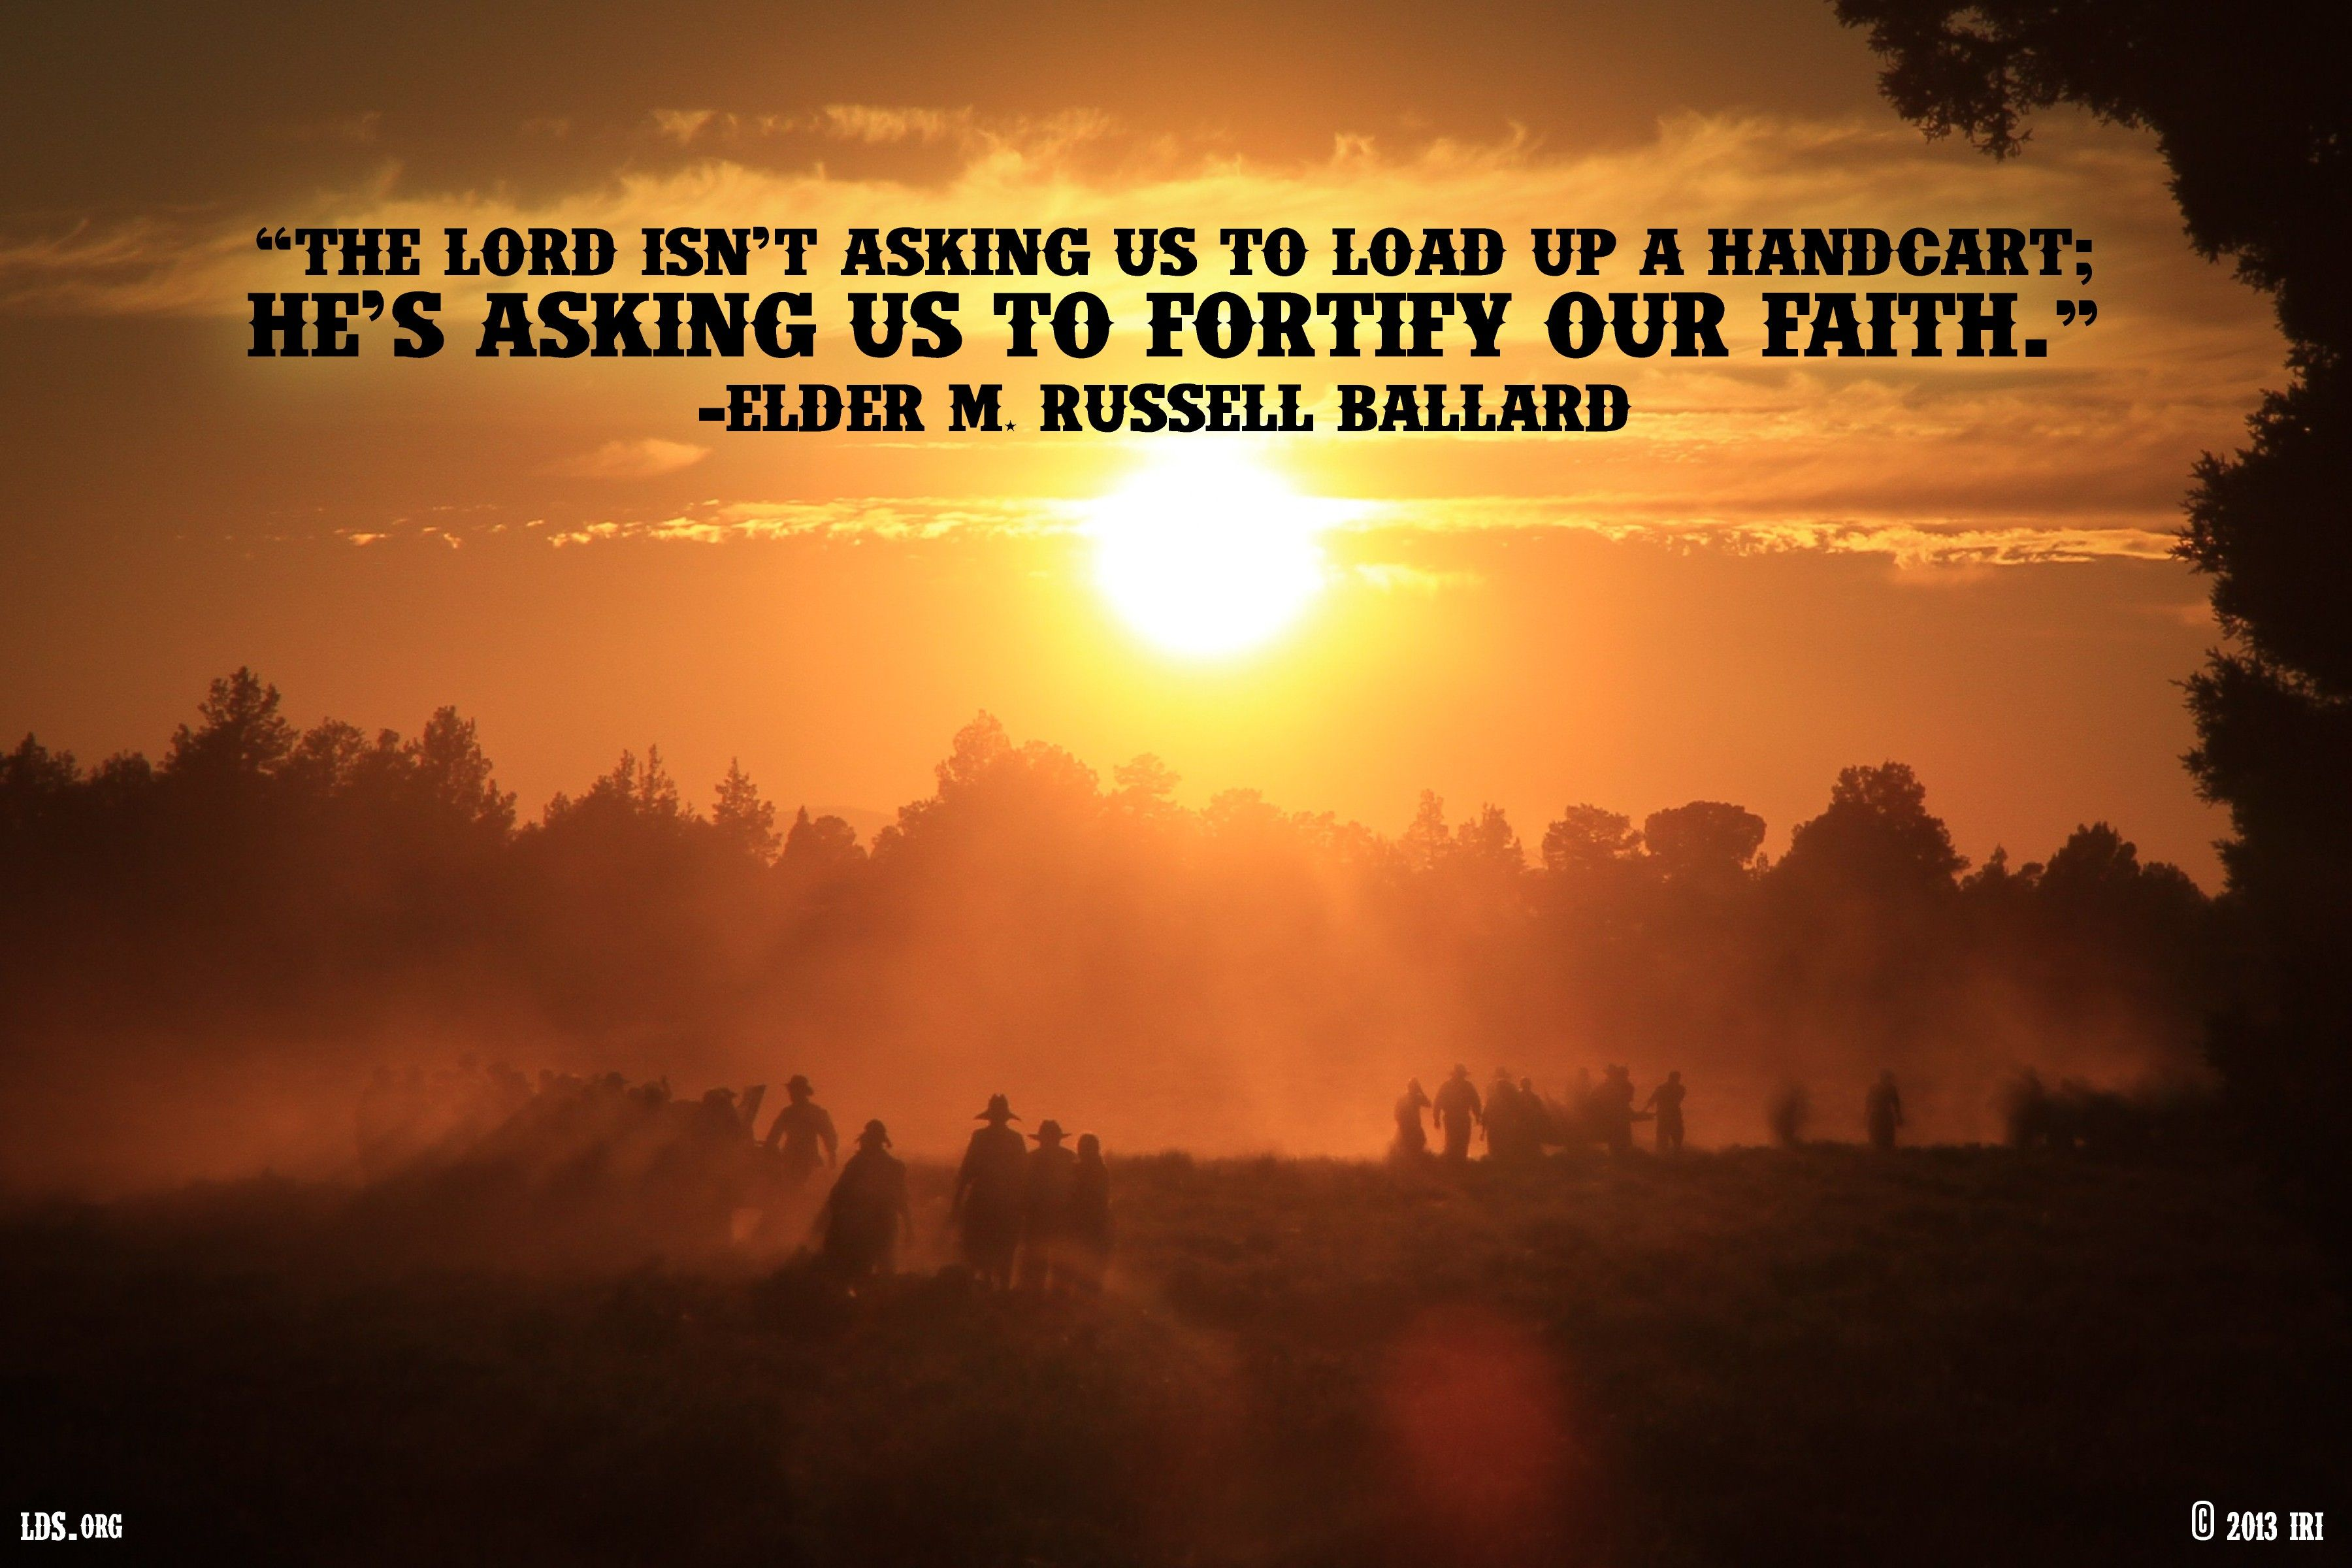 """""""The Lord isn't asking us to load up a handcart; He's asking us to fortify our faith.""""—Elder M. Russell Ballard, """"The Truth of God Shall Go Forth"""""""